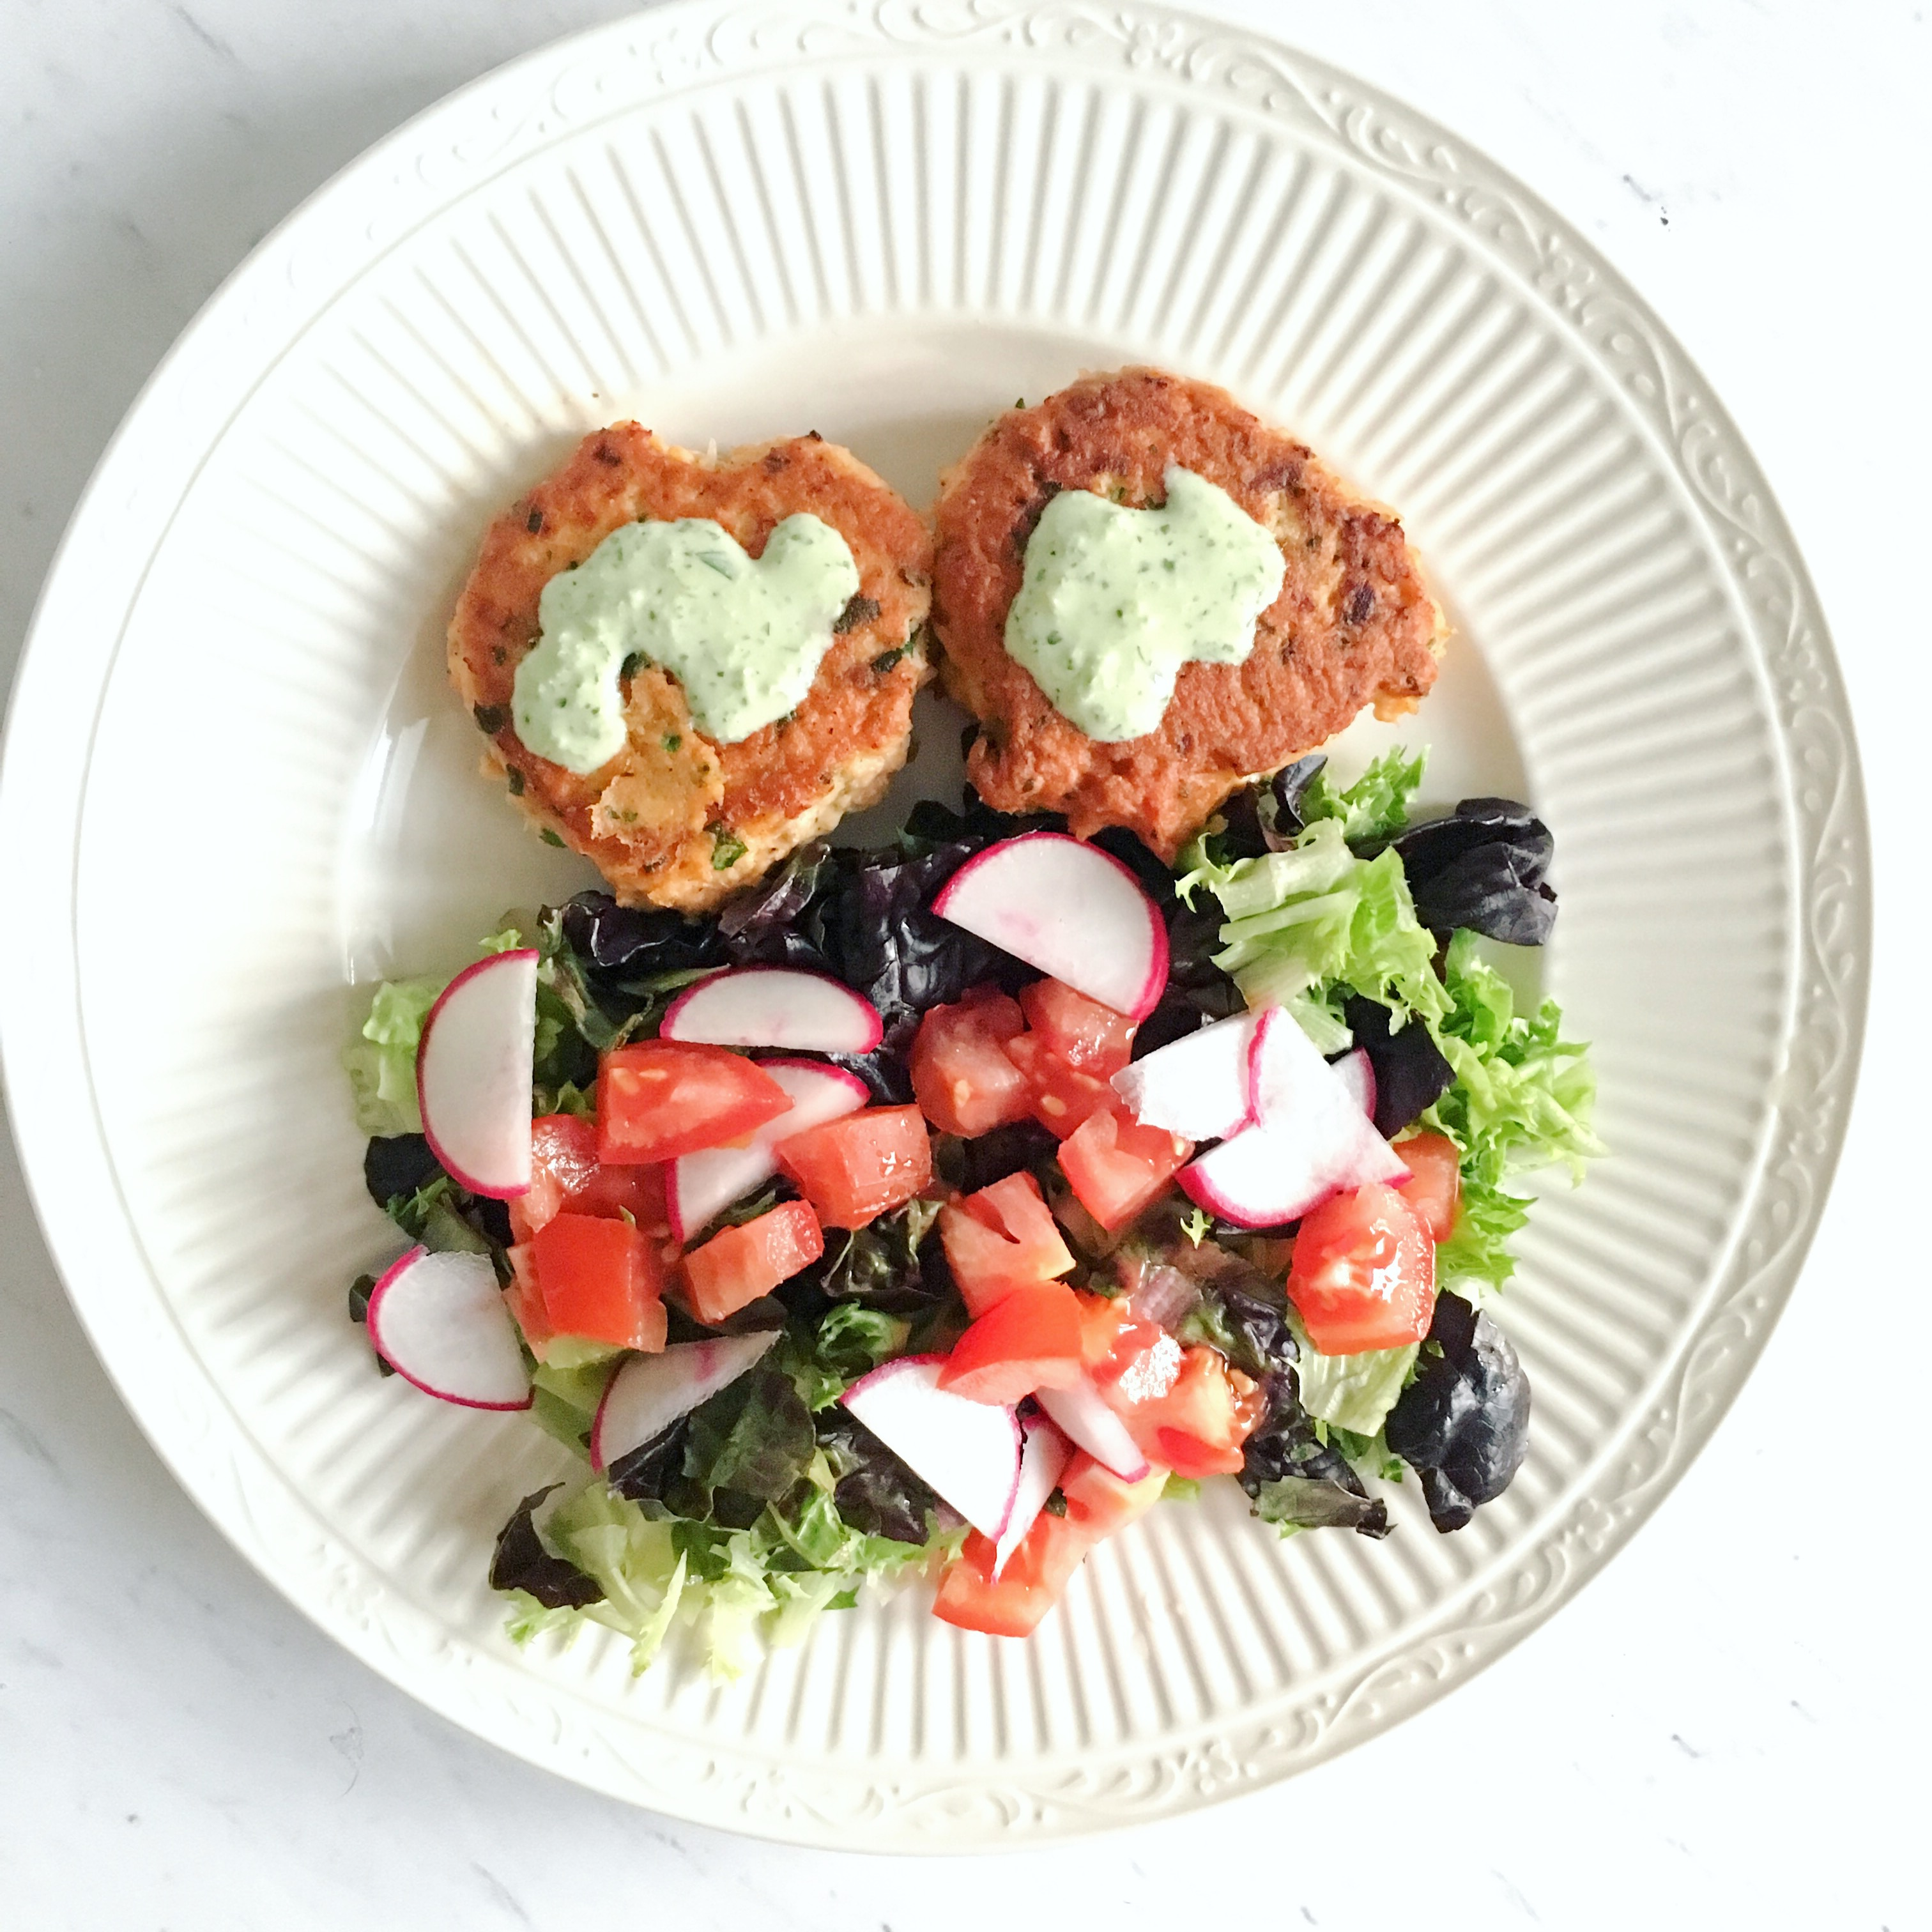 Homemade Salmon Cakes with green goddess dressing